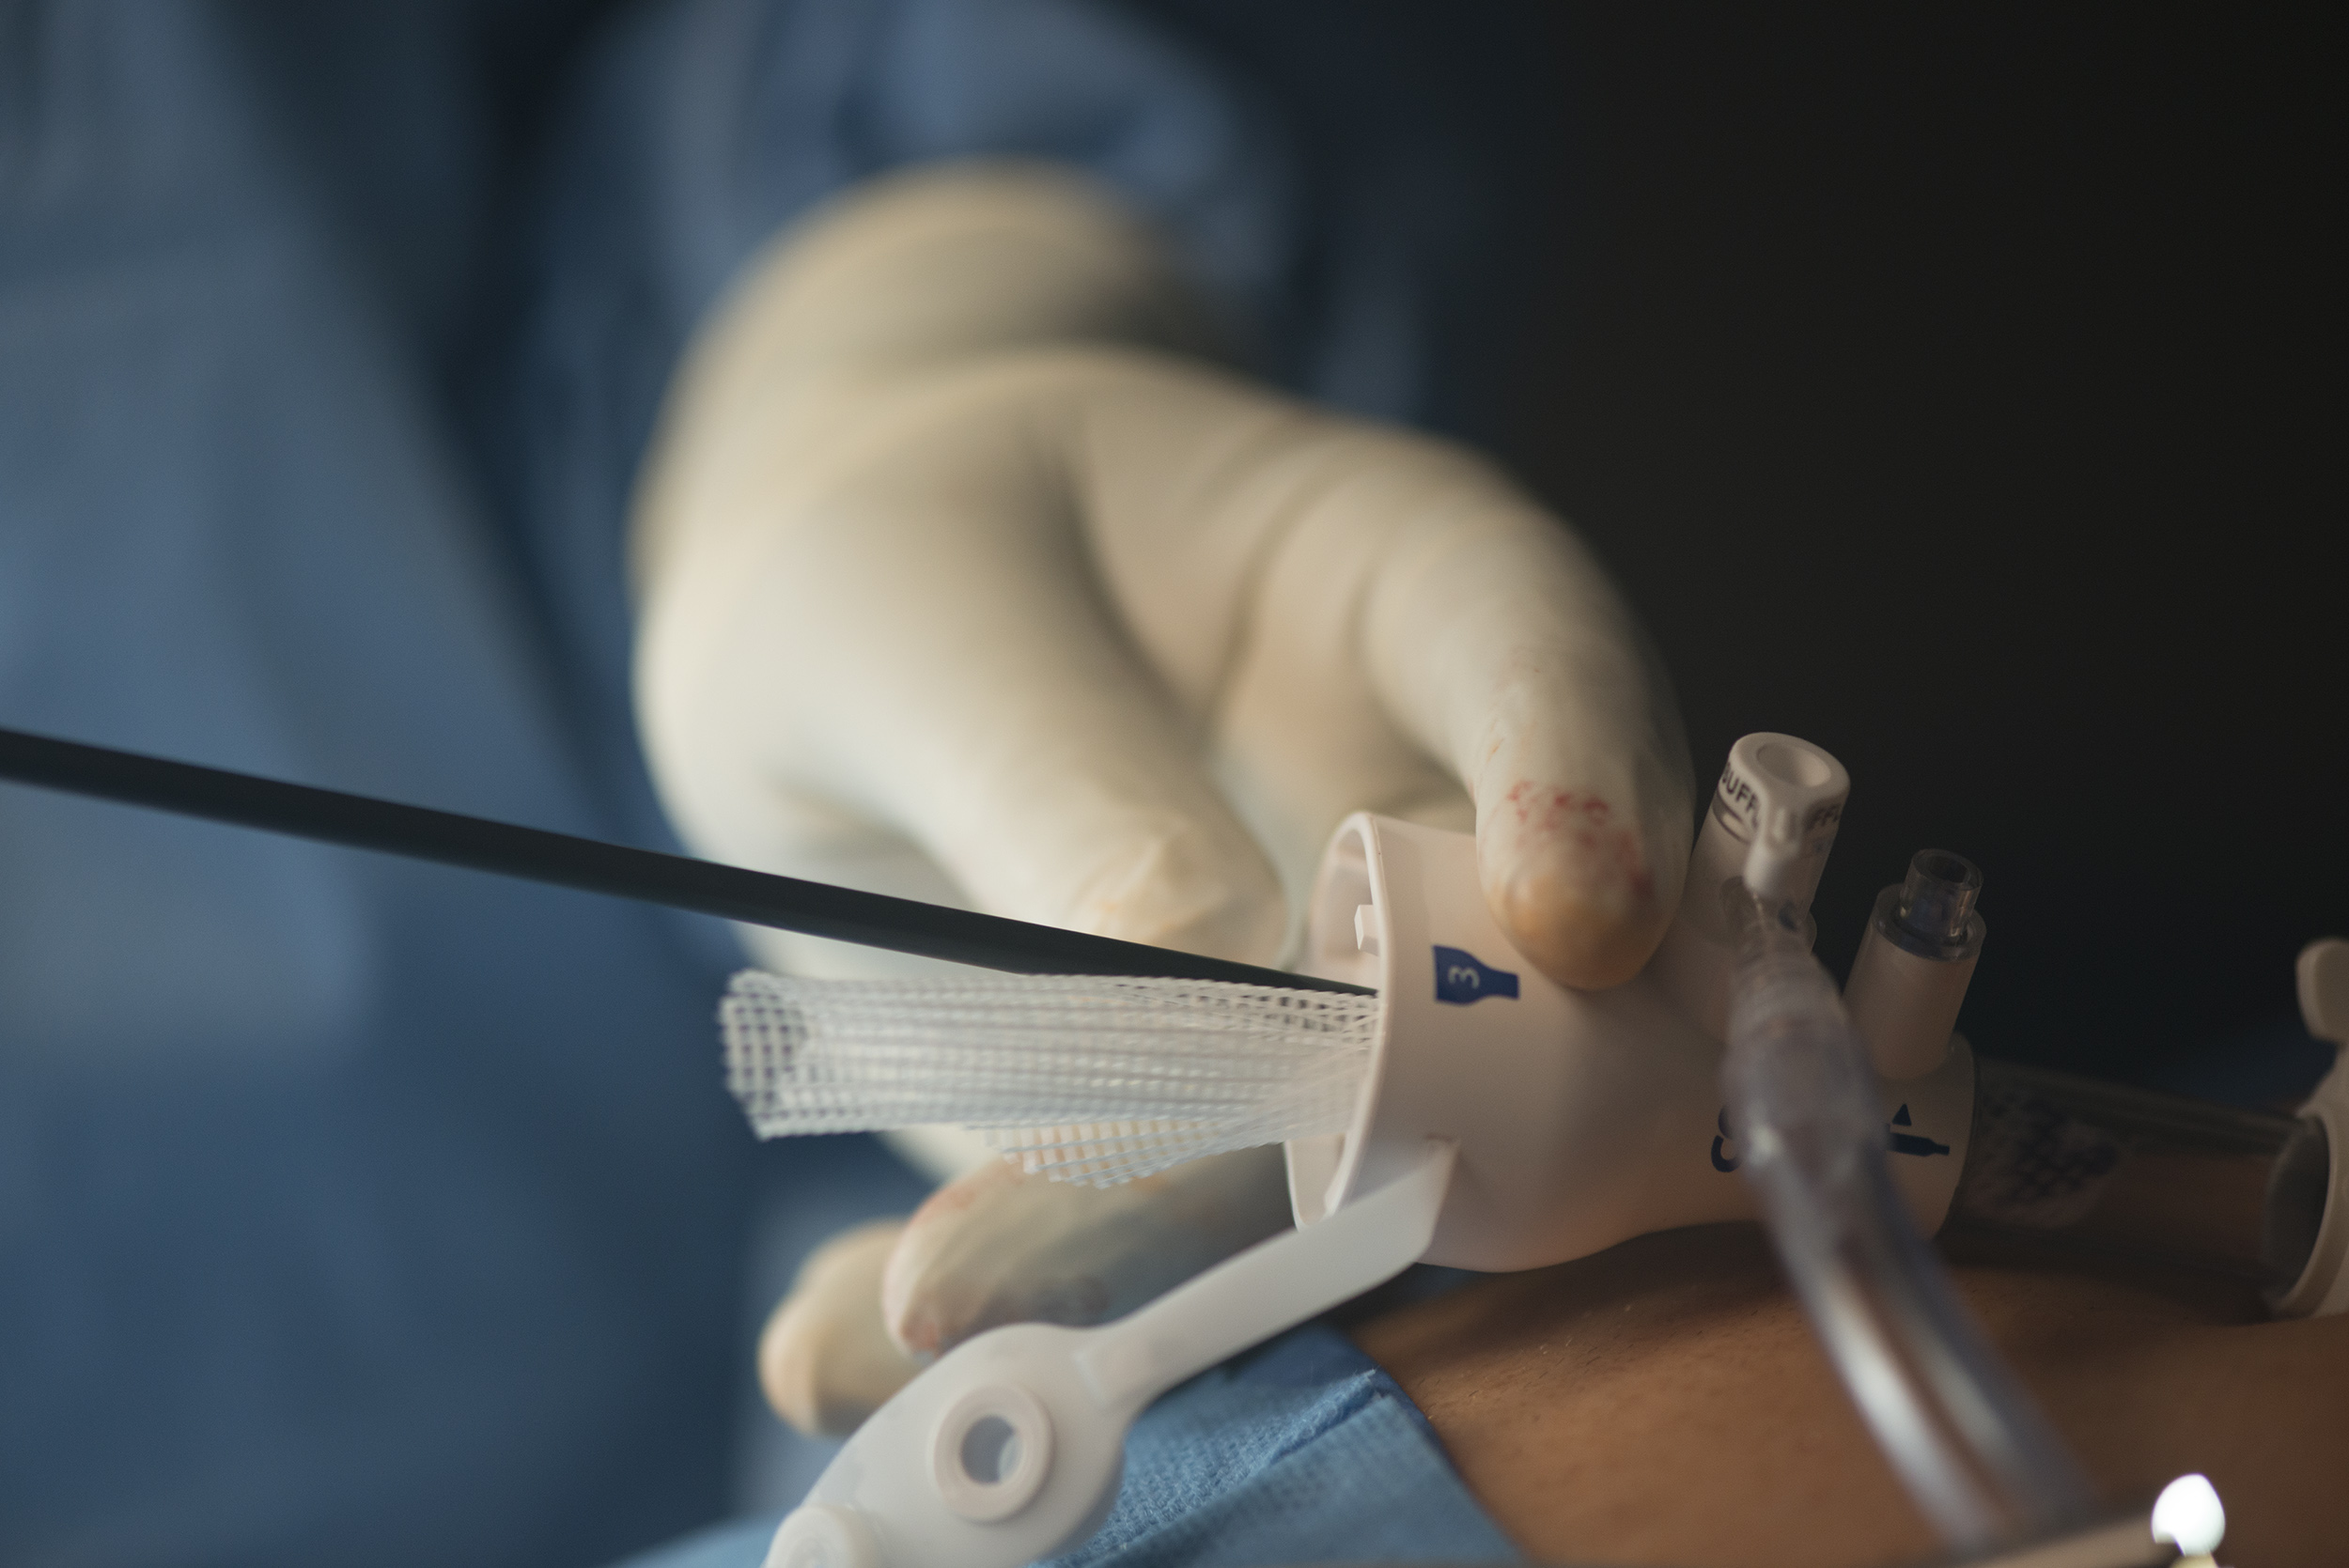 Inguinal Hernia Mesh being placed into tracer